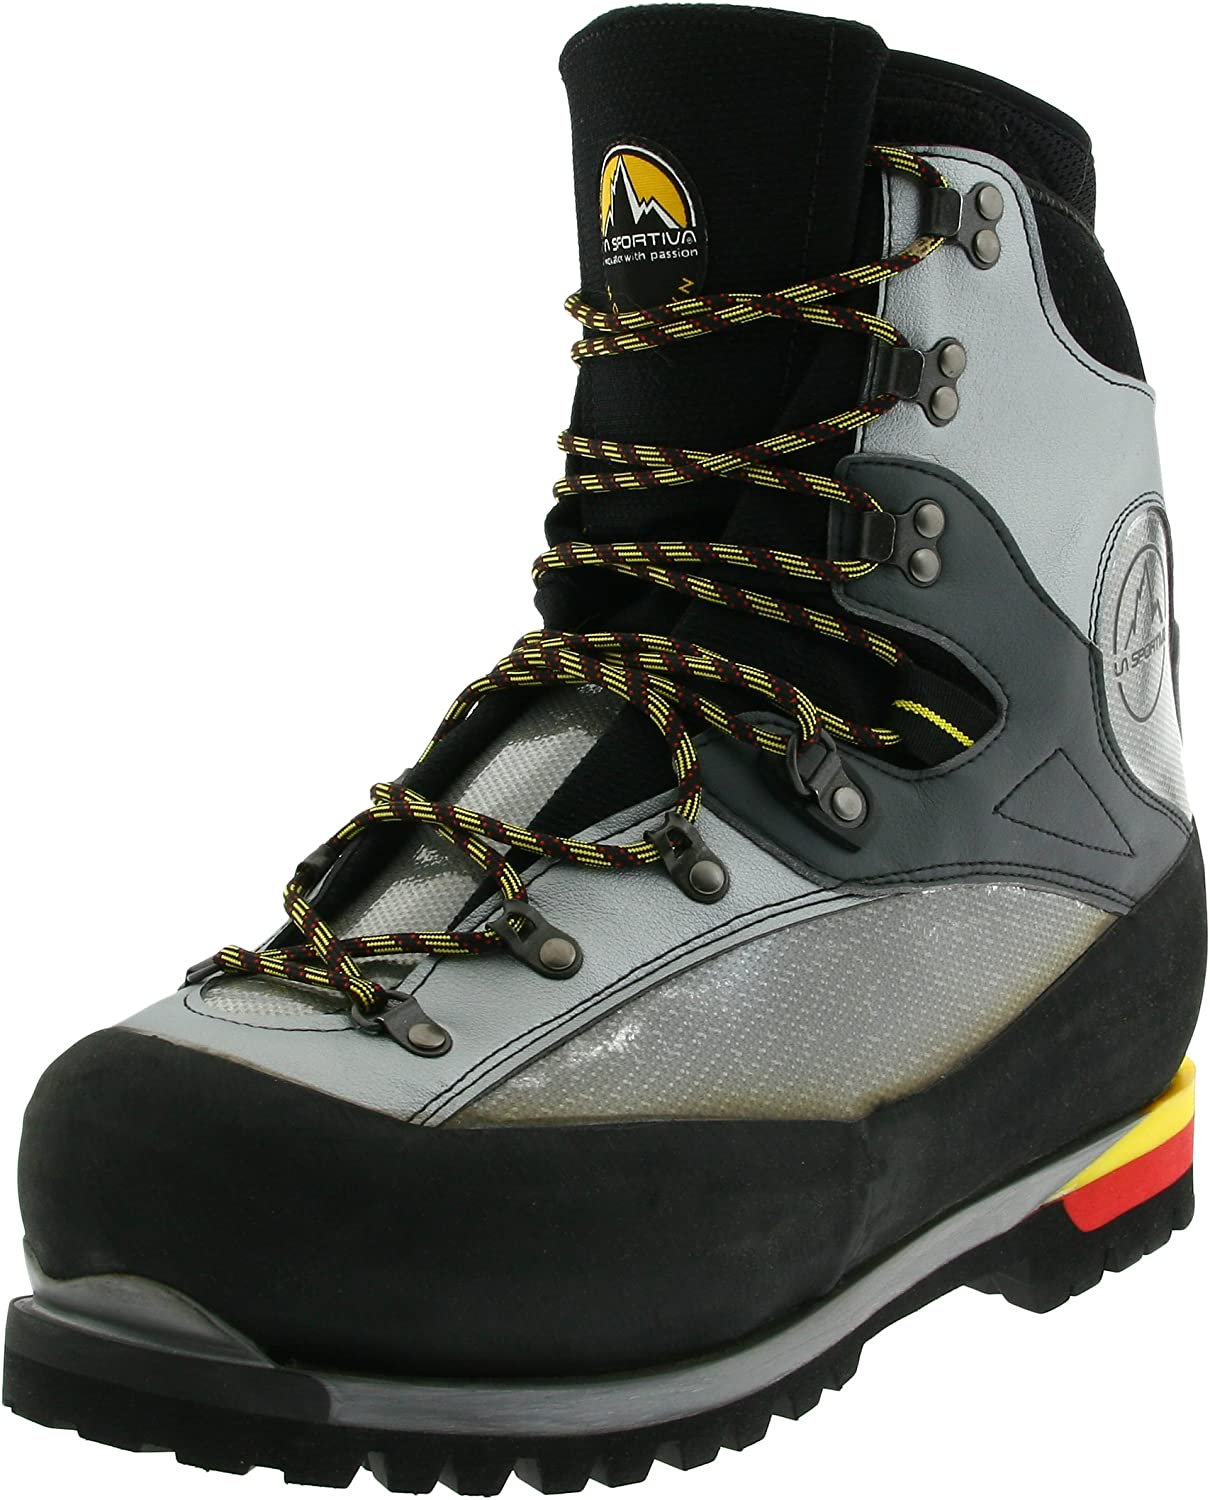 [La Sportiva] メンズ Baruntse Mountaineering Boot - Men's シルバー 12.5 mens_us